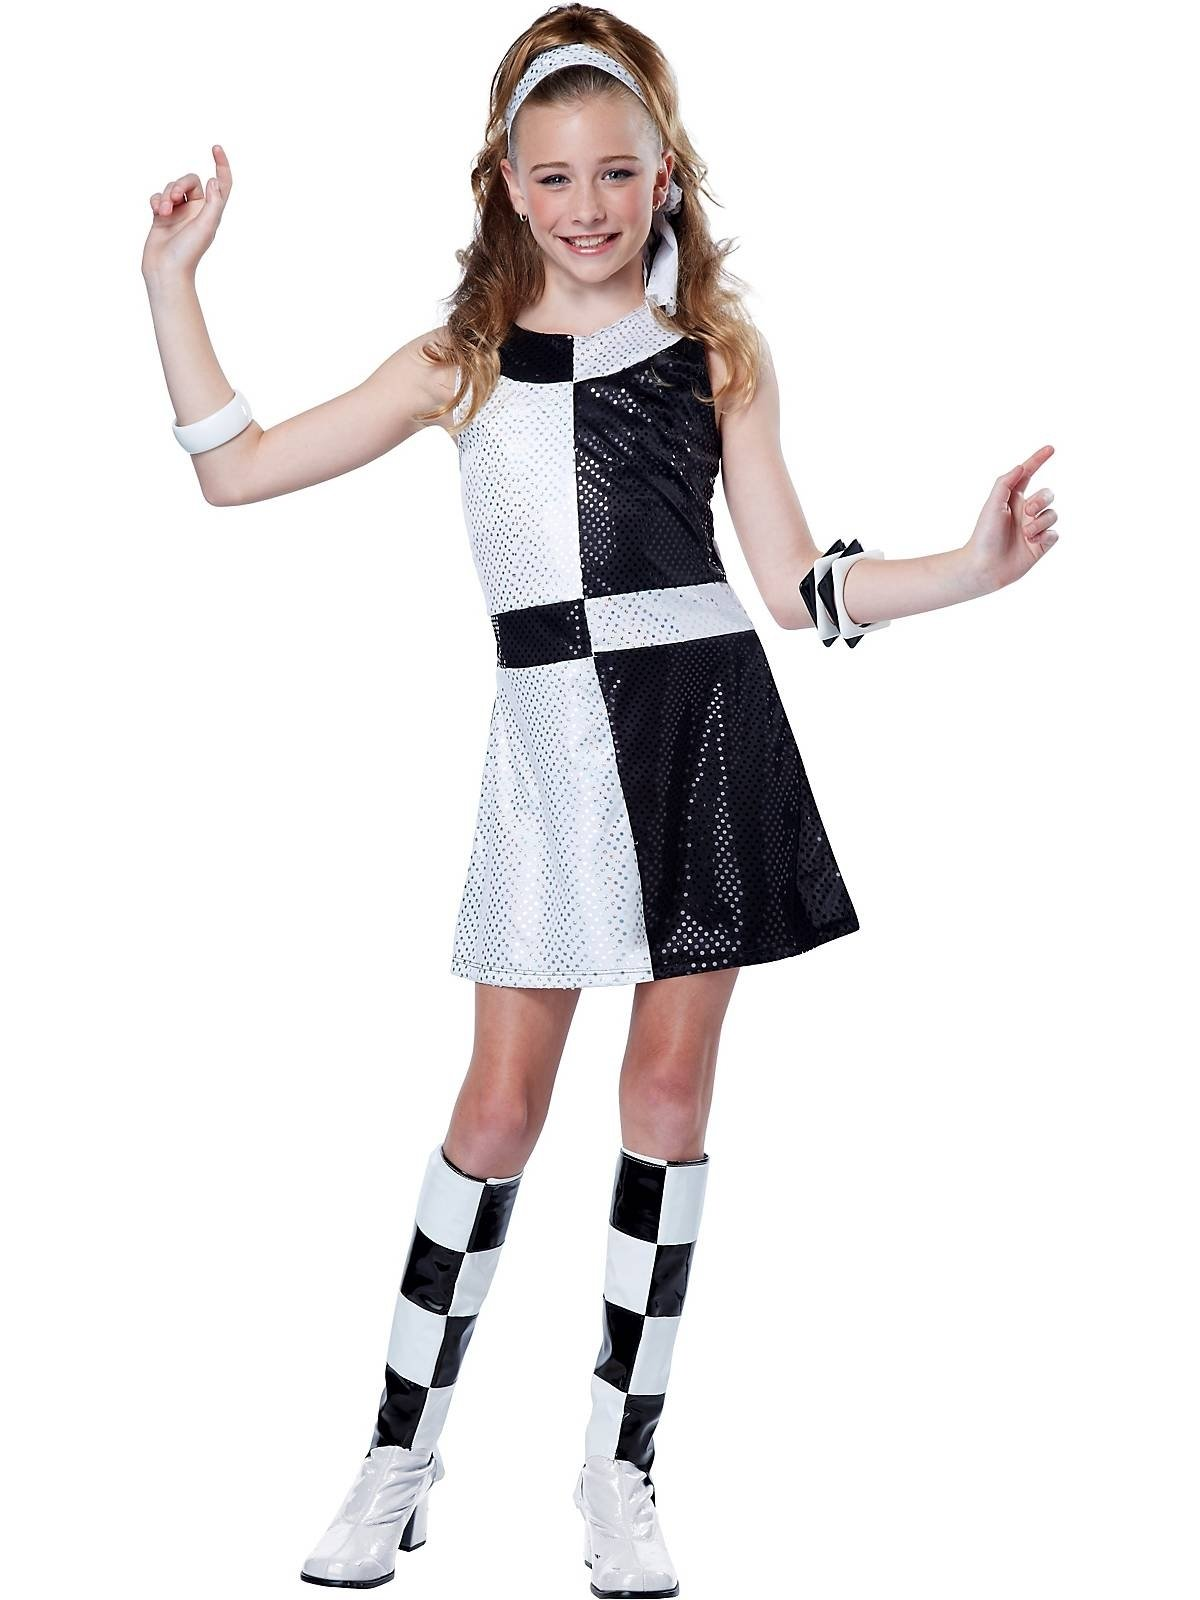 10 Best Black And White Costume Ideas girls 60s mod chic costume wholesale 60s costumes for girls 70s